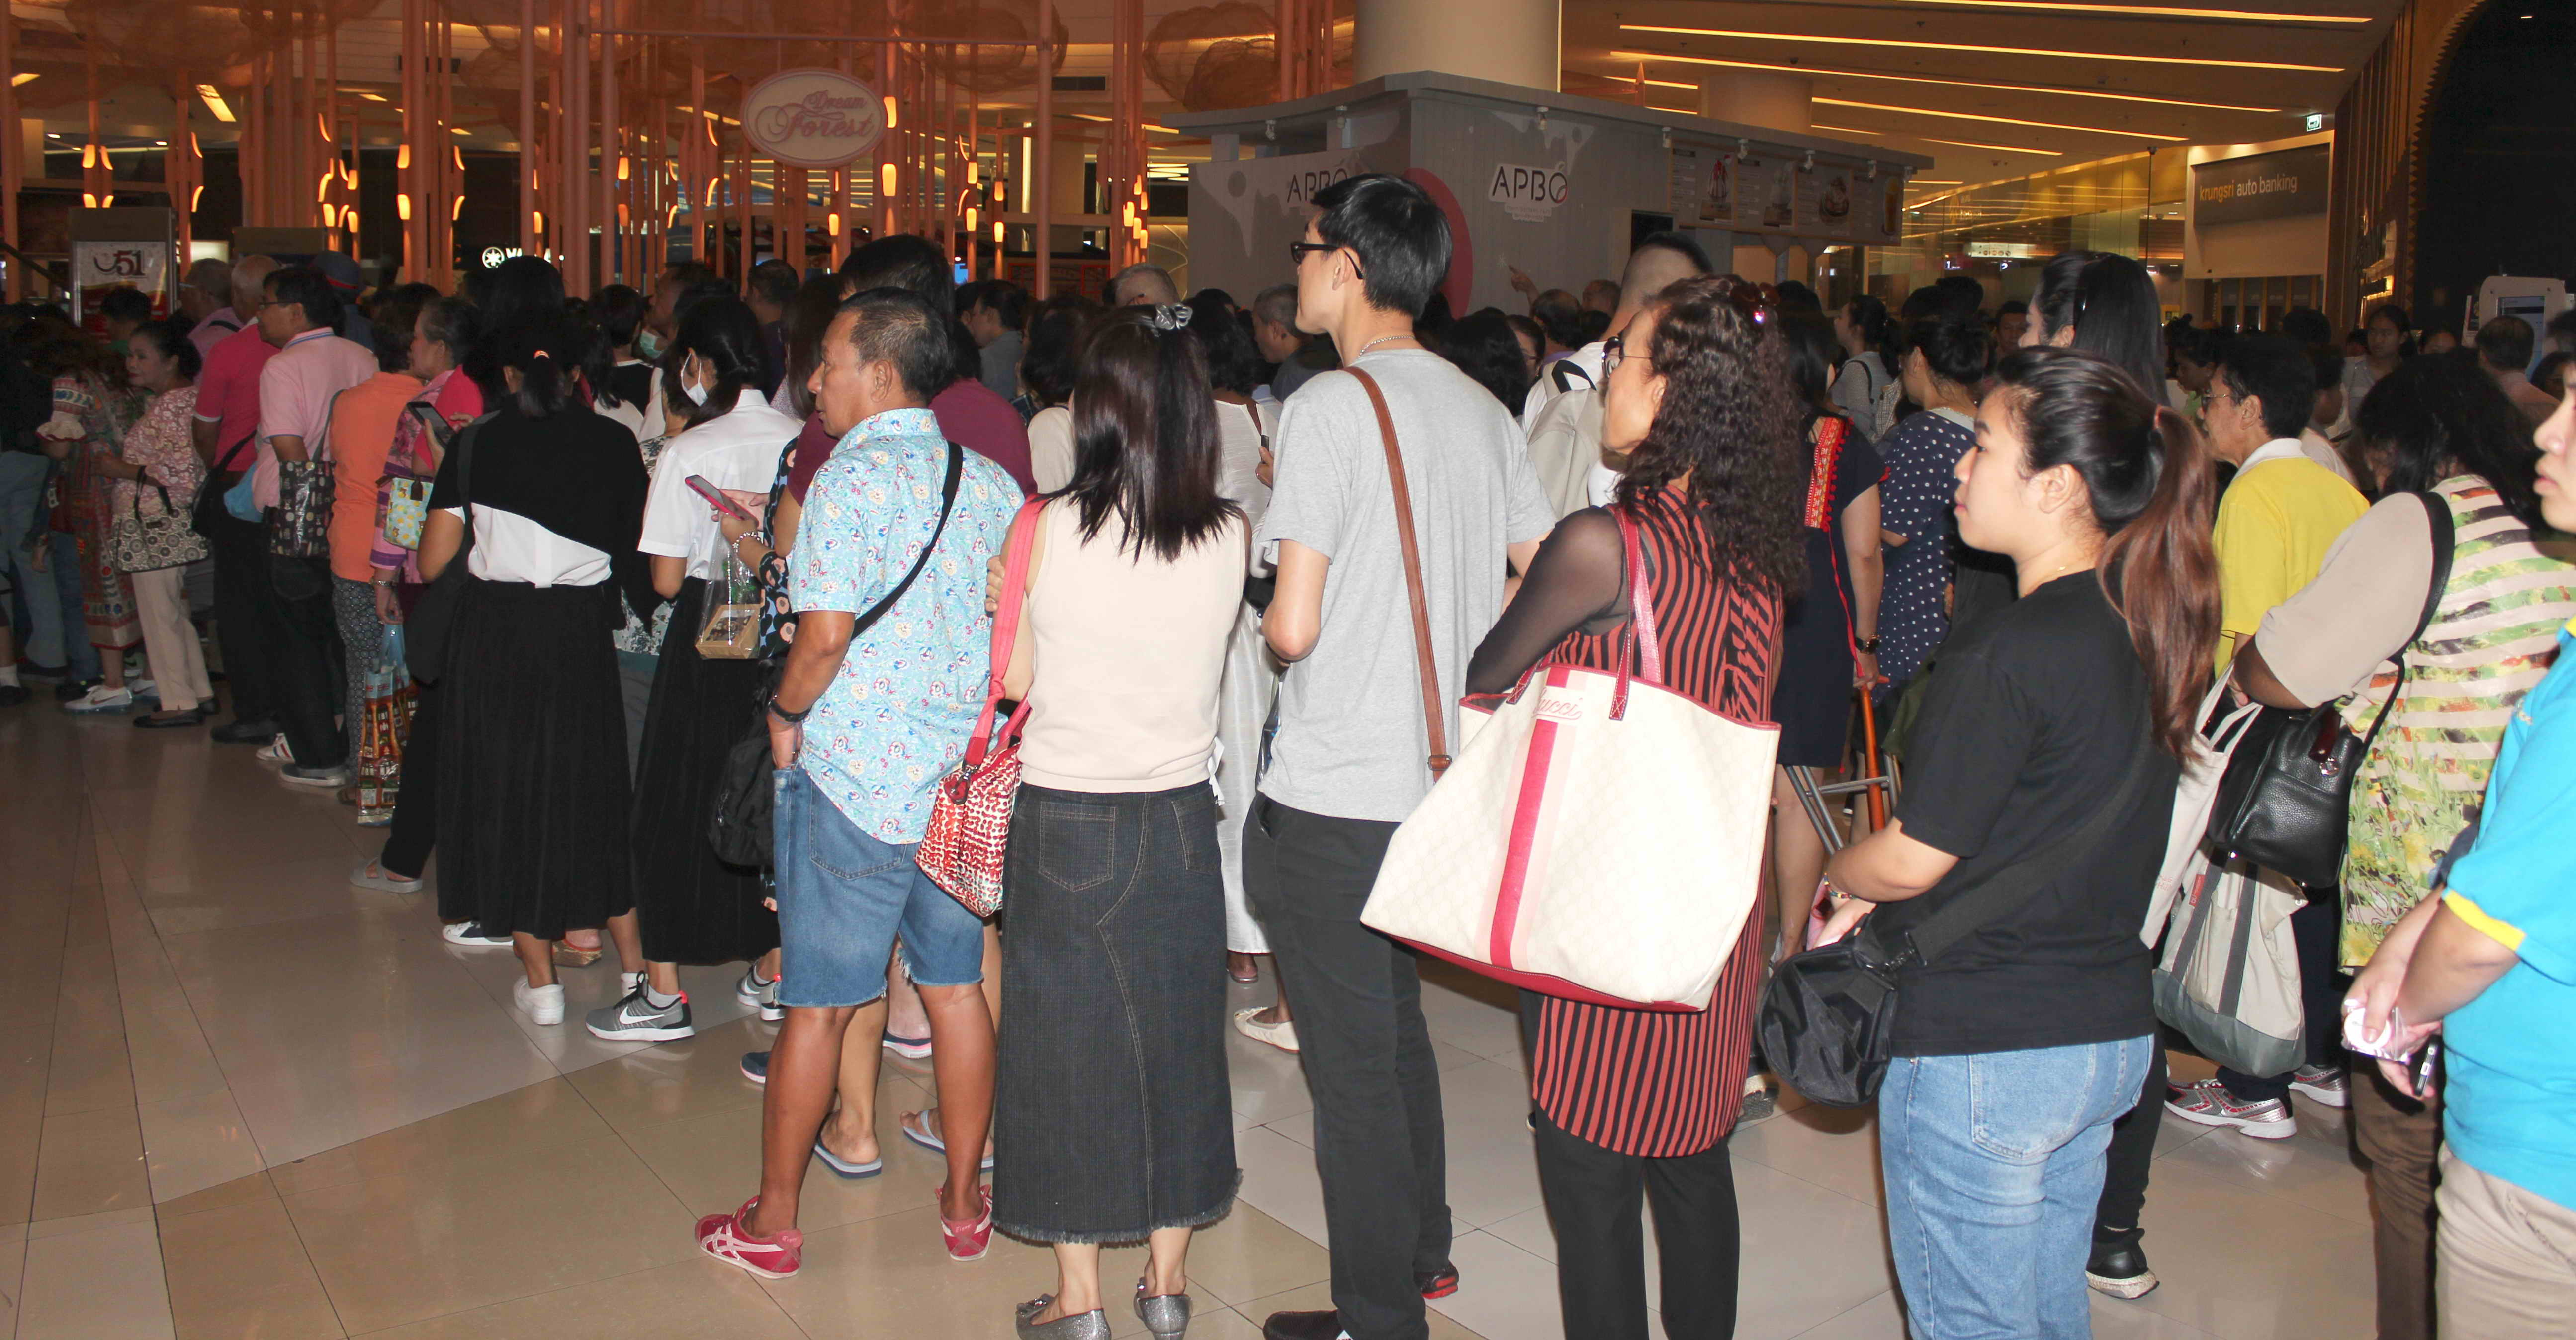 Red Cross Diplomatic Bazaar - Siam Paragon 2018 02 24-25 - 8137